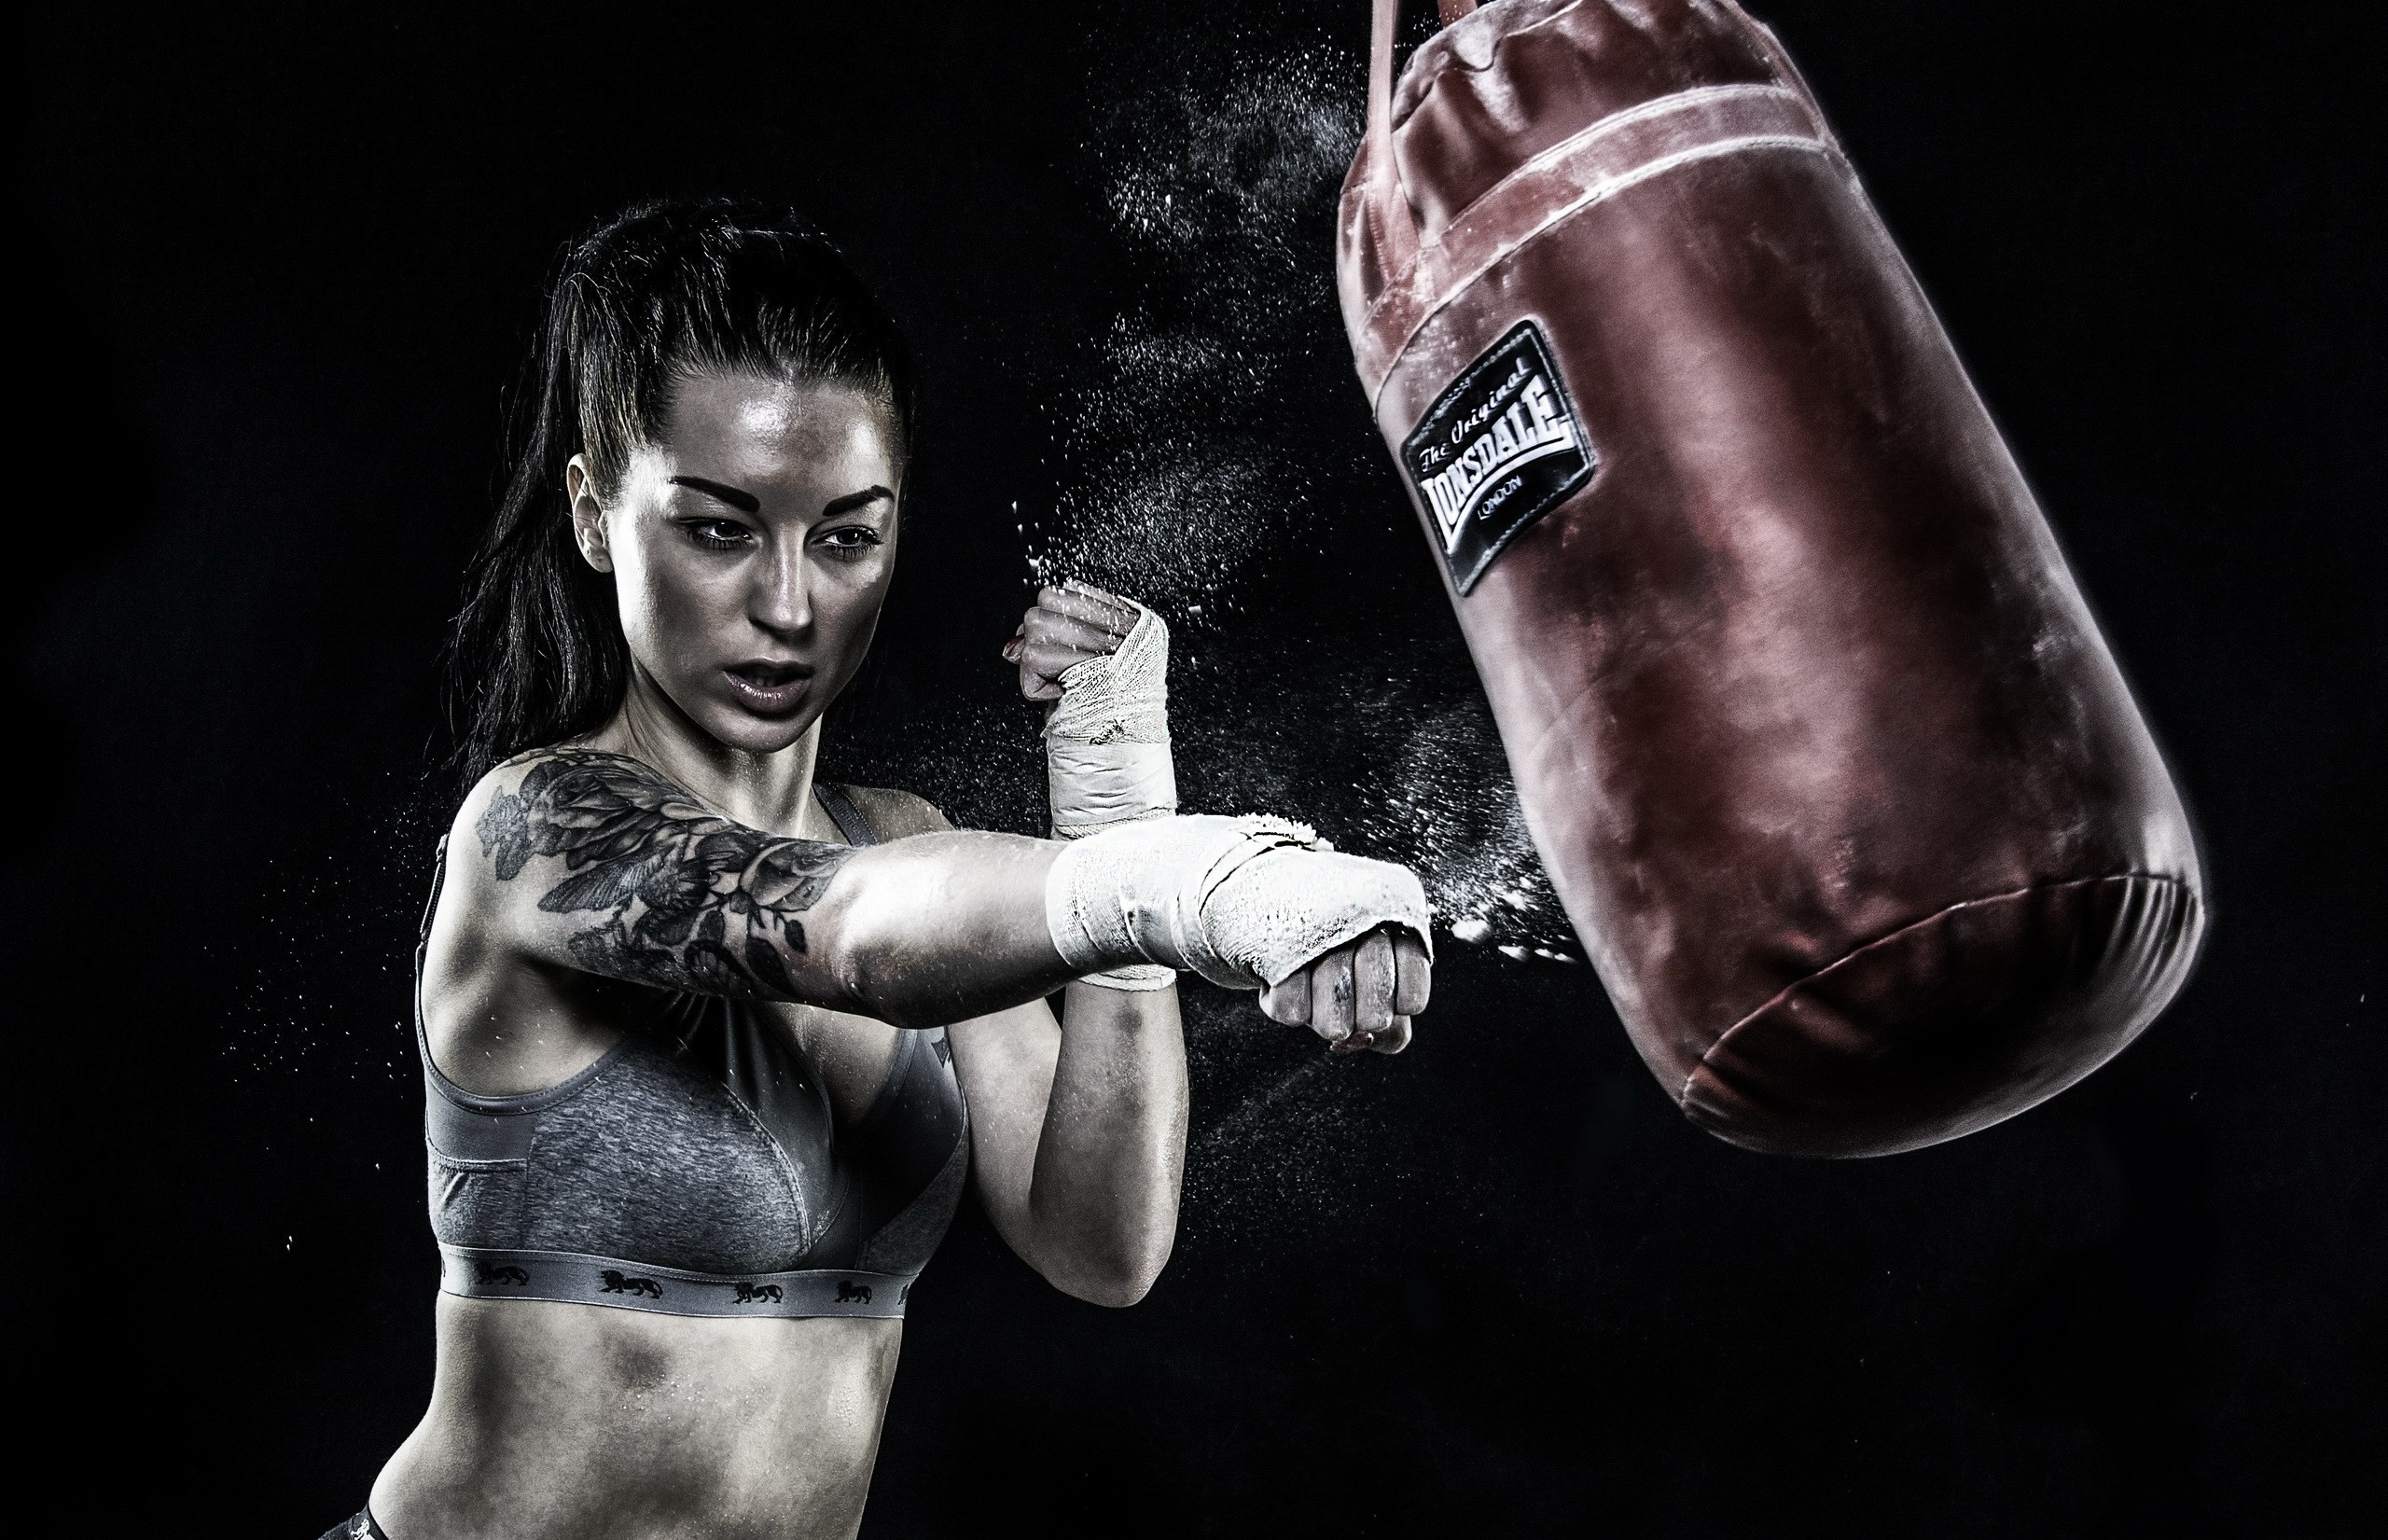 boxing hd wallpaper by Taft Round (2017-03-07)